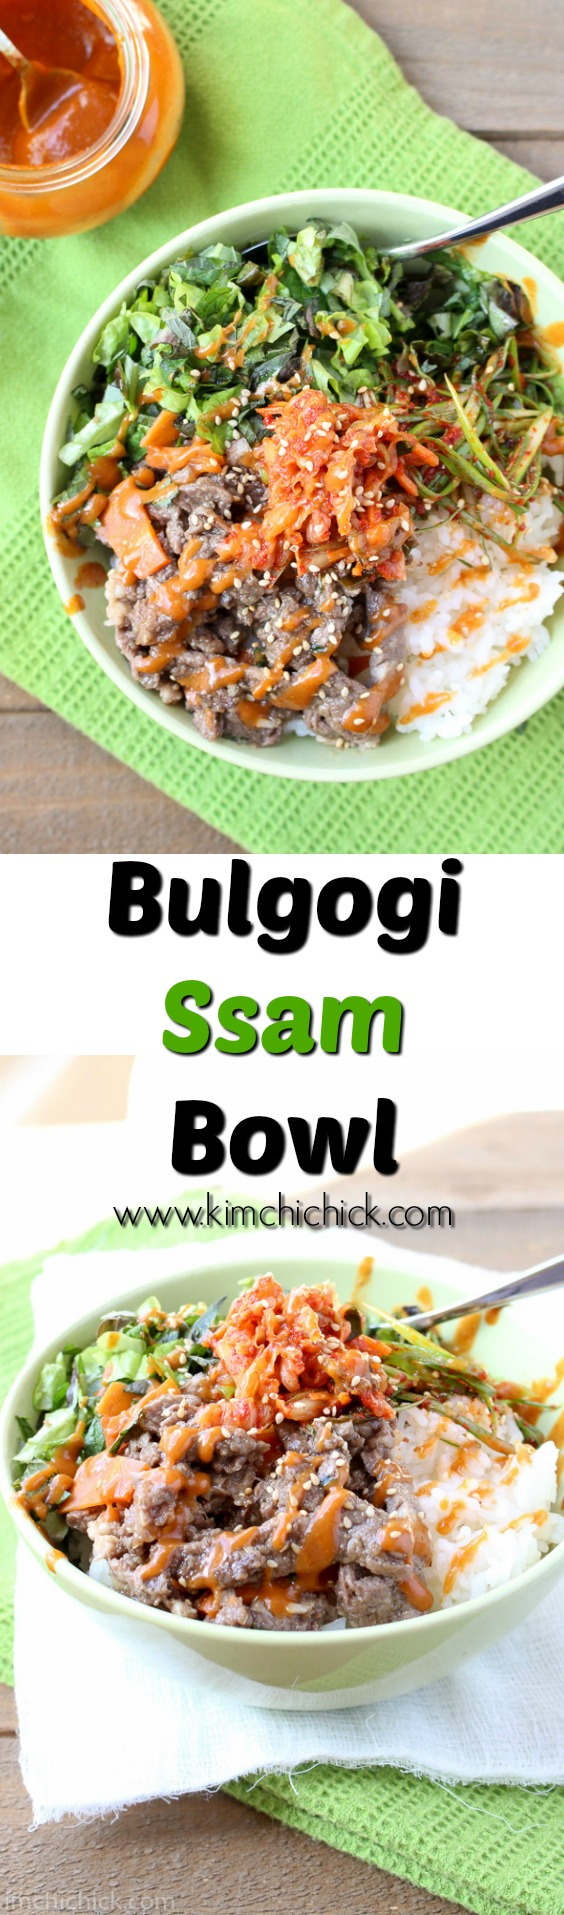 Bulgogi Ssam Bowl is bulgogi, fresh greens, kimchi, seasoned scallions, and rice in one bowl. Drizzle Ssam sauce on top and you have one fresh and satisfying meal!